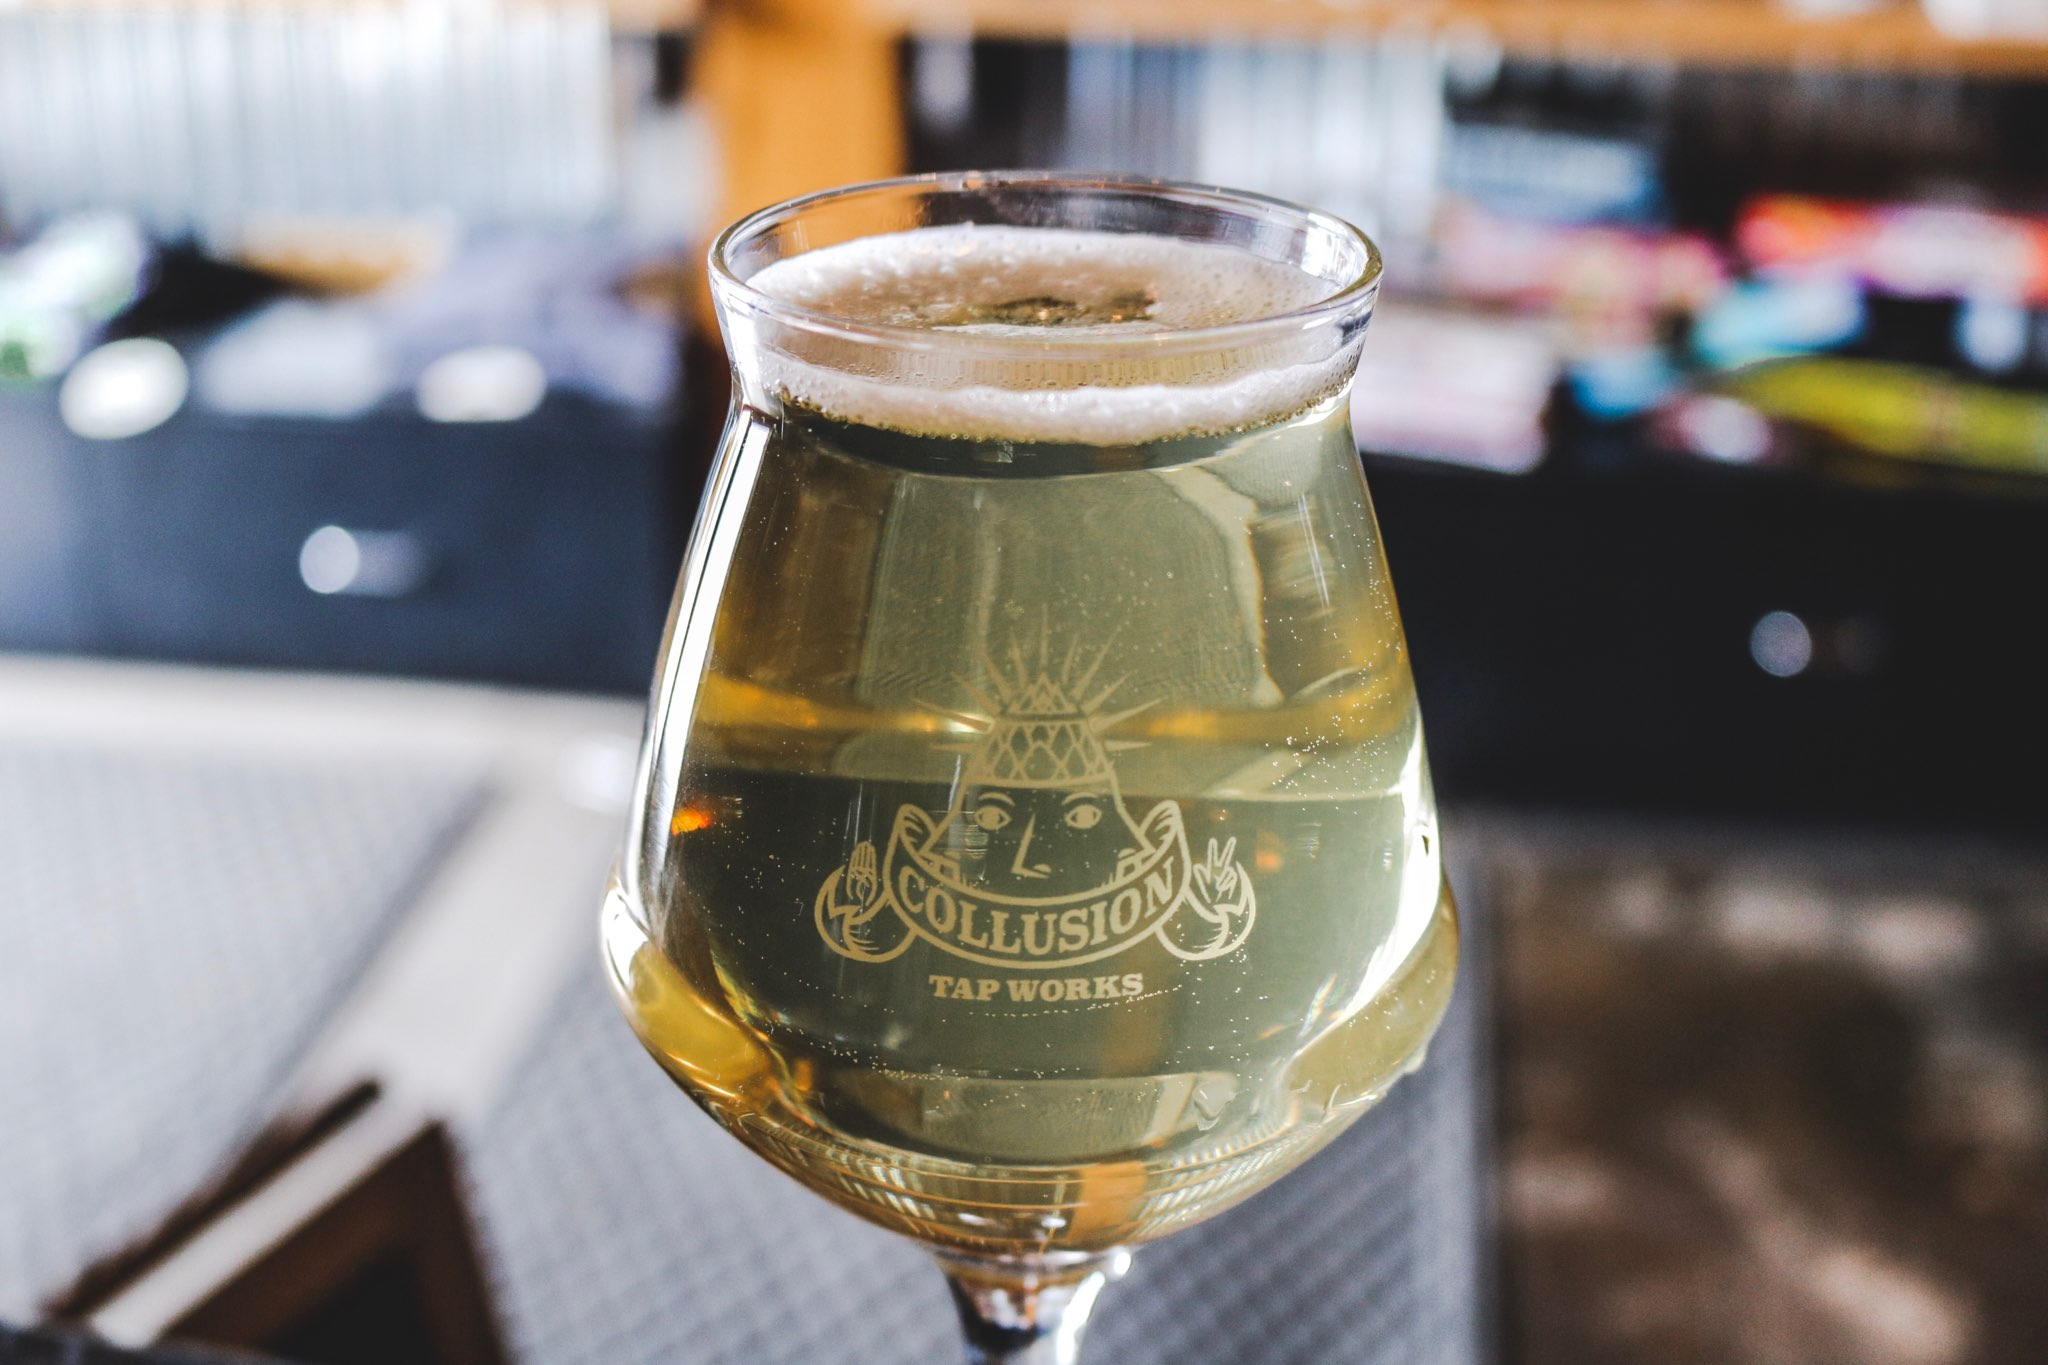 Collusion Tap Works will brew a special mead to celebrate Honey Week.